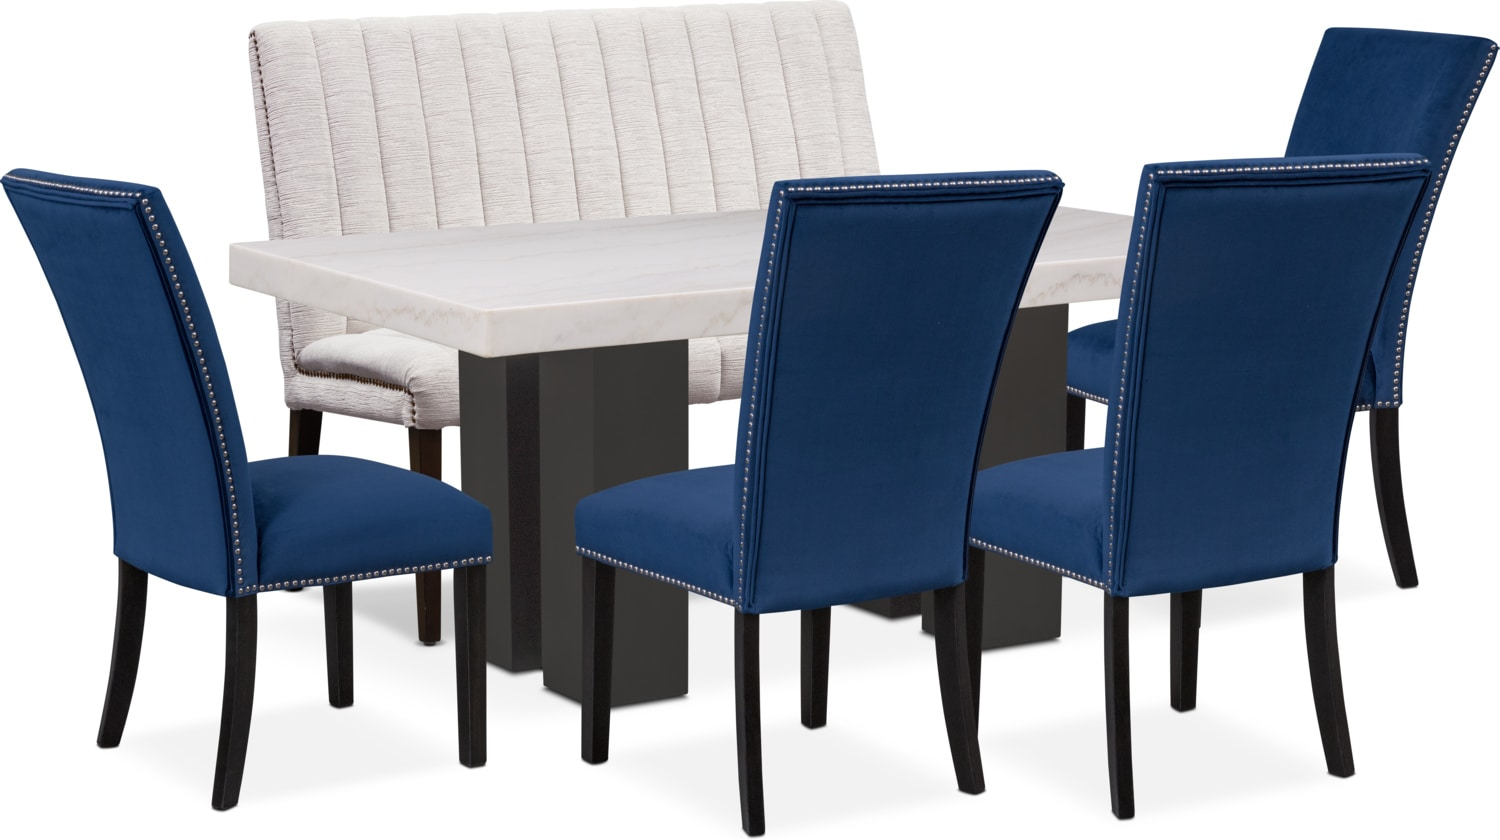 value city dining table and chairs diamond chair replica shop room furniture tap to change artemis 4 upholstered side bench blue oyster